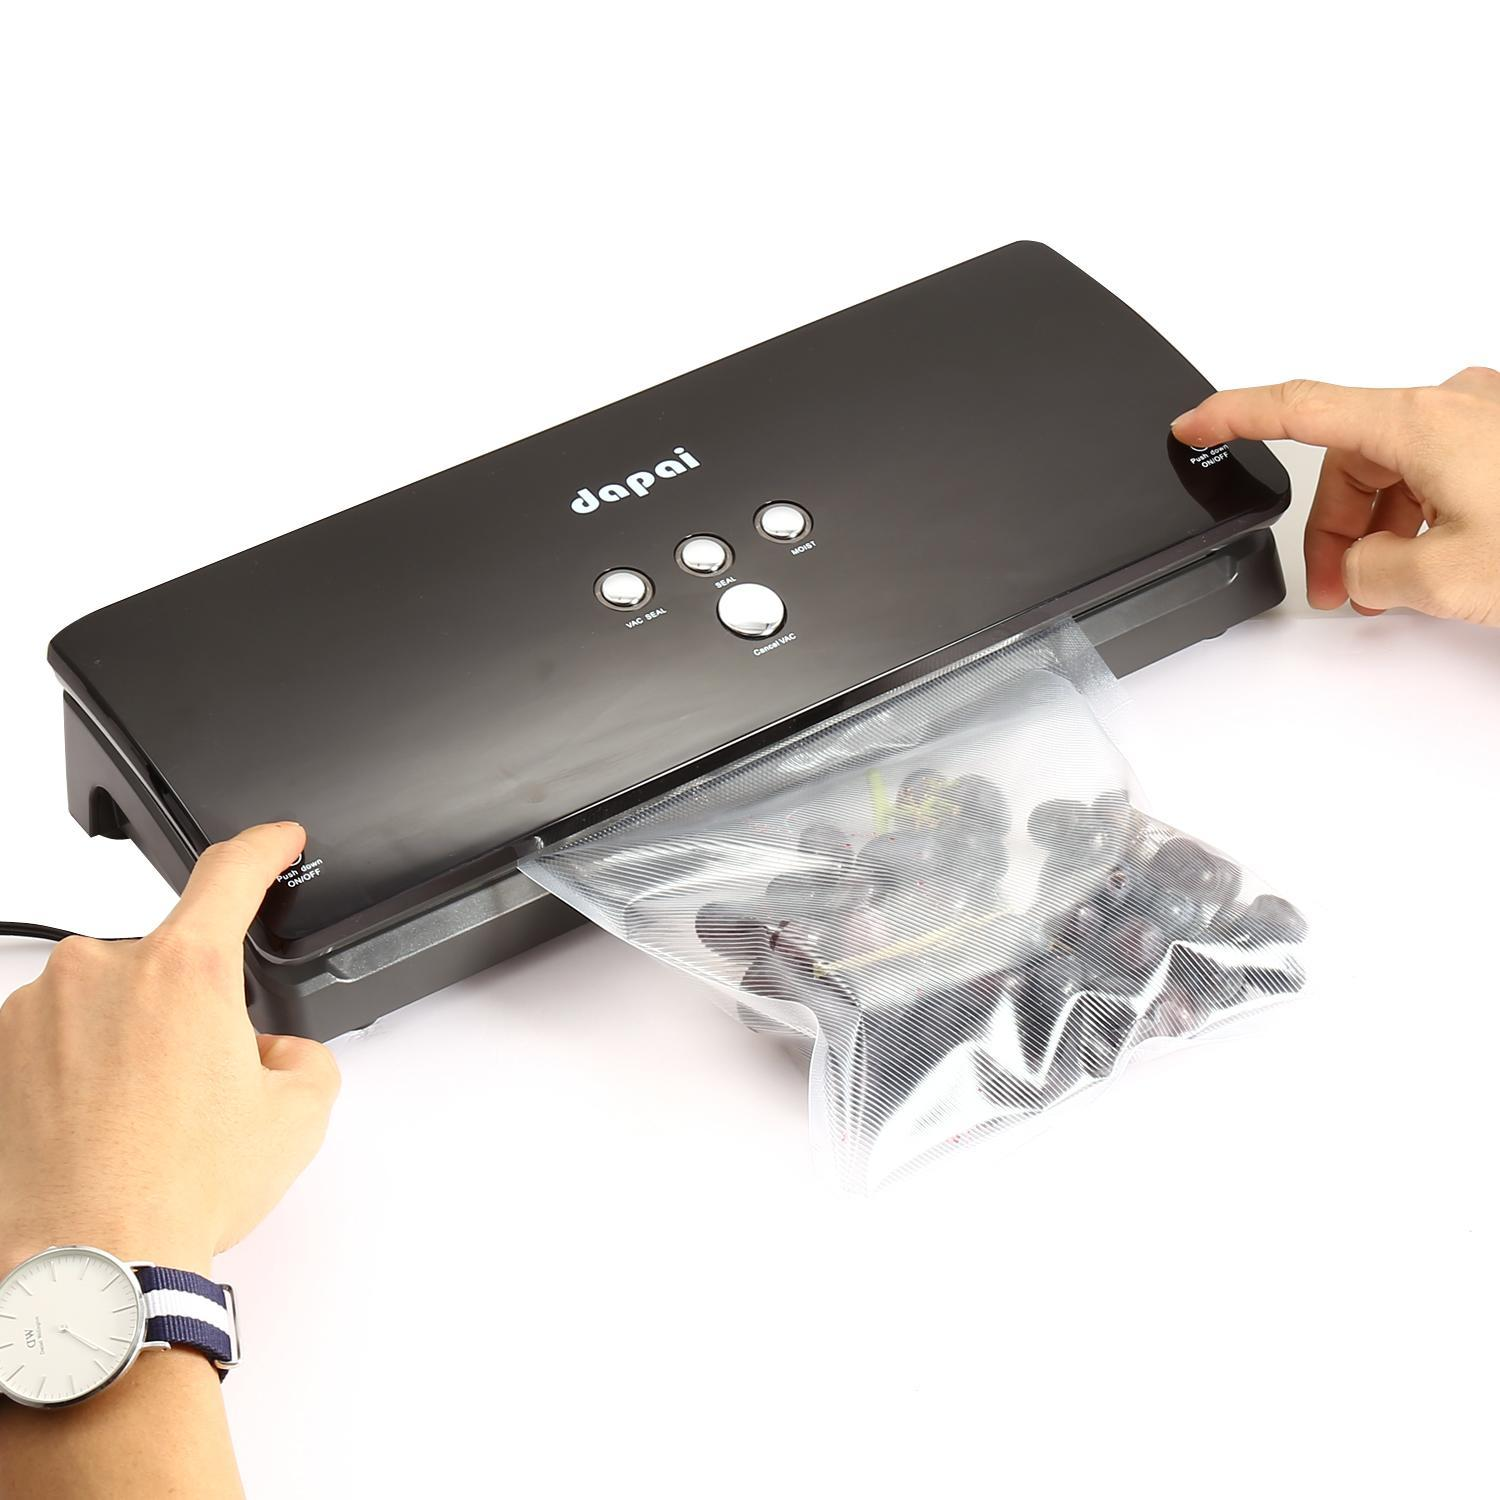 2-in-1 Automatic Vacuum Sealing System with Bonus Built-in Retractable Handheld Sealer & Starter